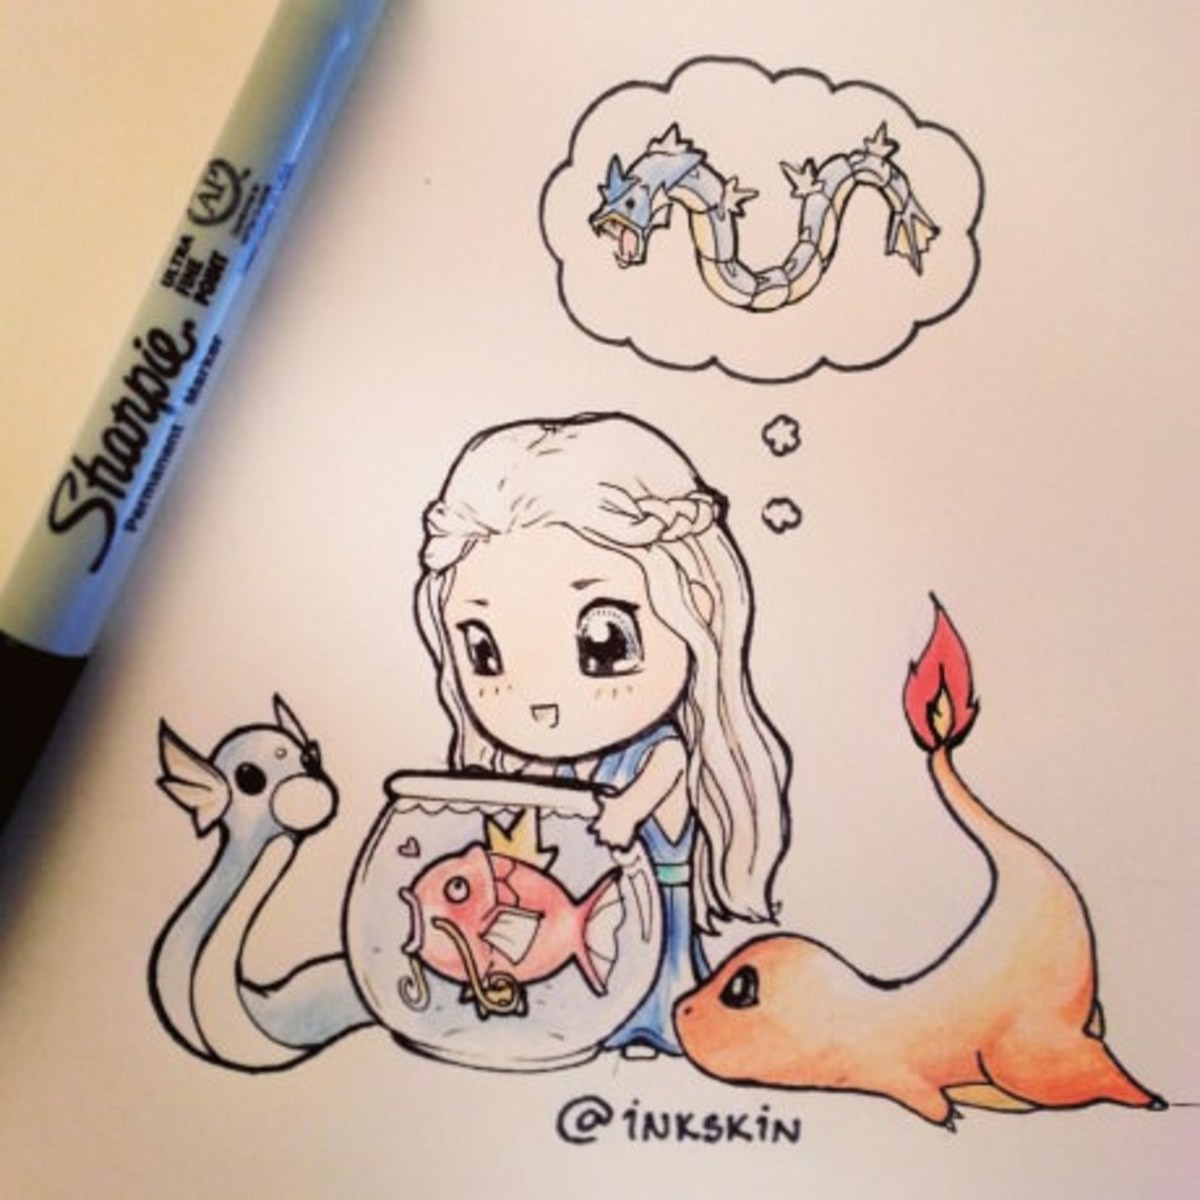 Be patient Mother of Dragons. .. That won't make 3 dragons when they get to the final evolution